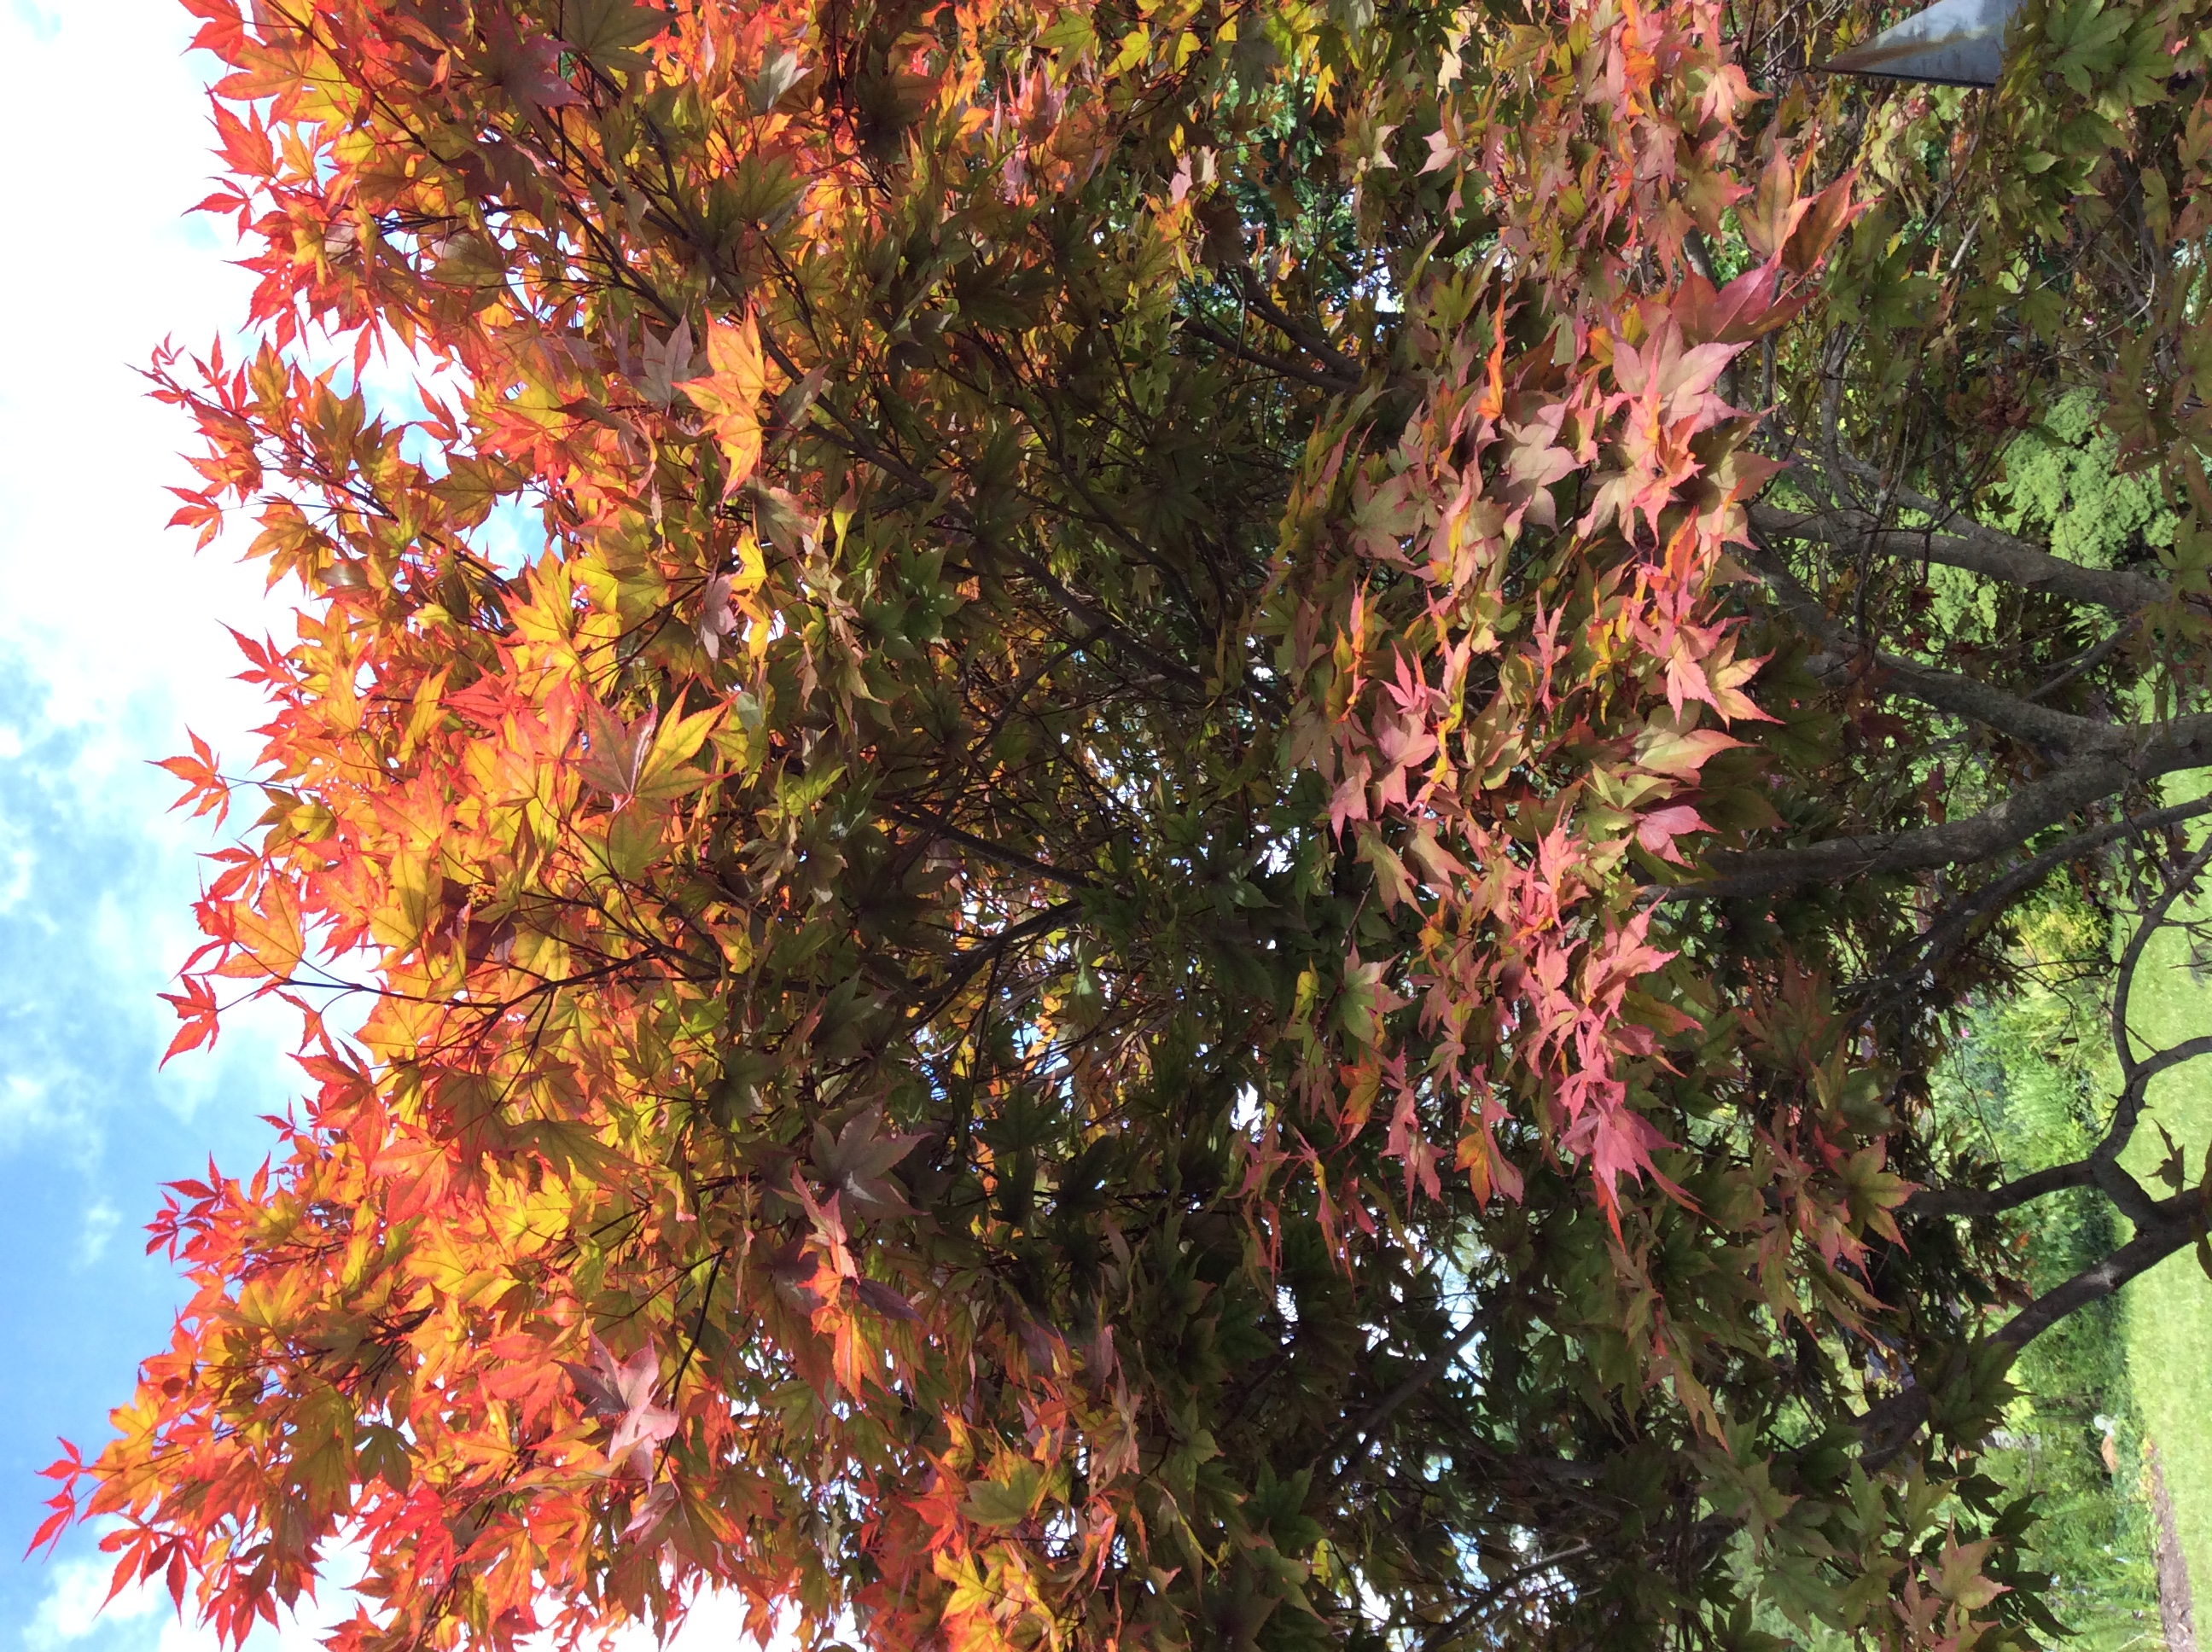 Looking up through the foliage of this Japanese maple I am always amazed at the colors, especially toward late afternoon.